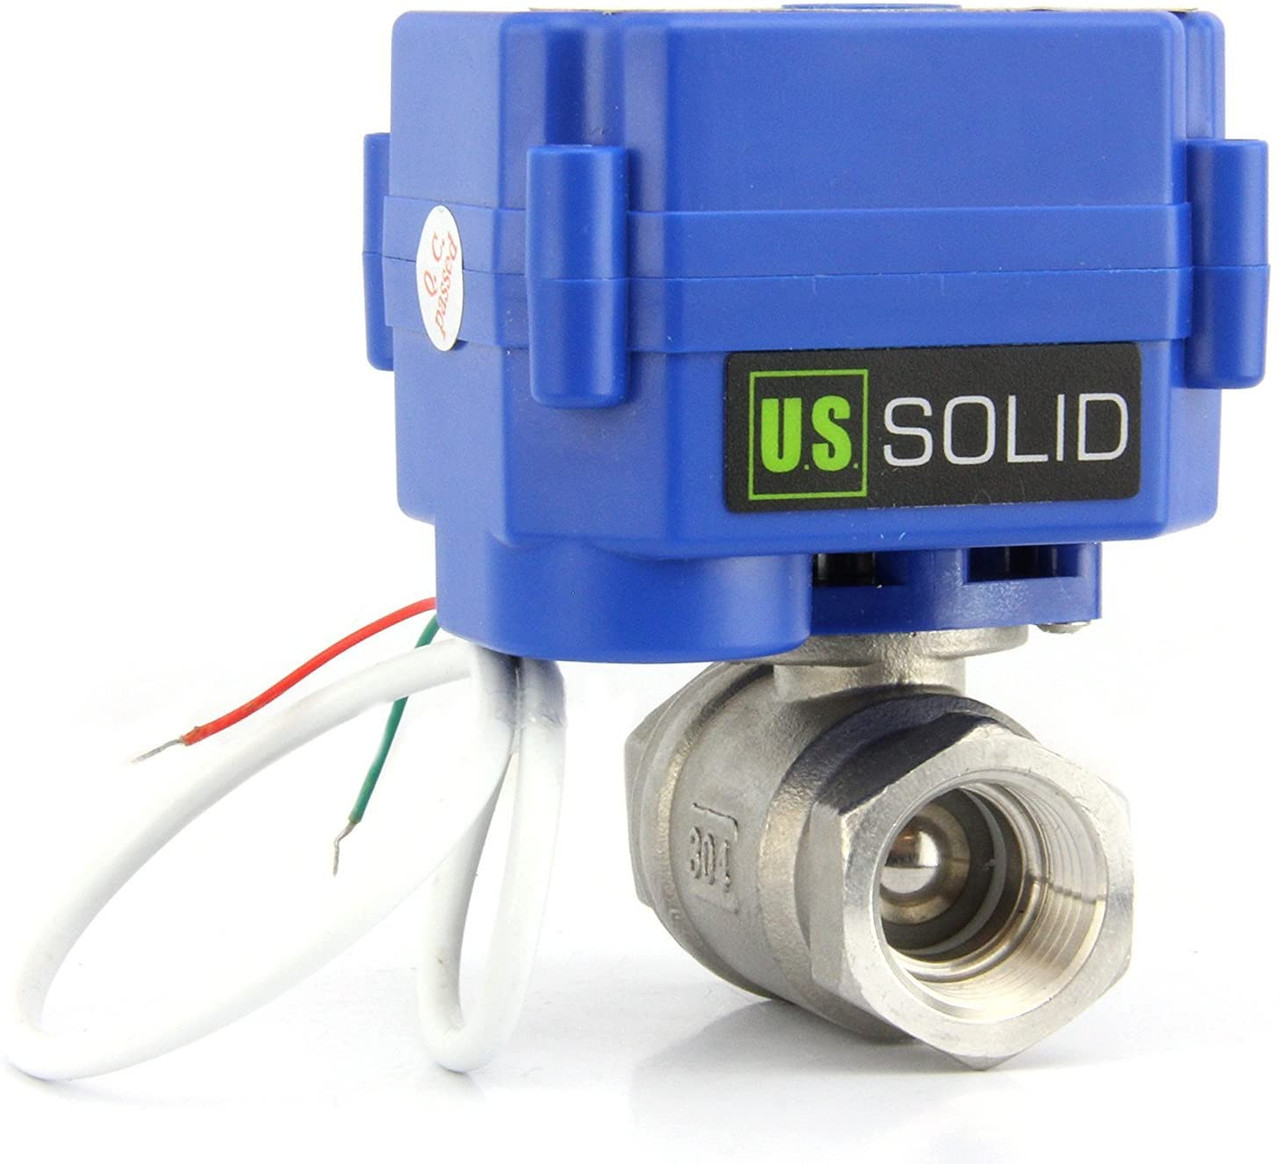 """U.S. Solid Motorized Ball Valve- 3/4"""" Stainless Steel Electrical Ball Valve with Standard Port, 85-265 V AC, 2 Wire Auto Return"""